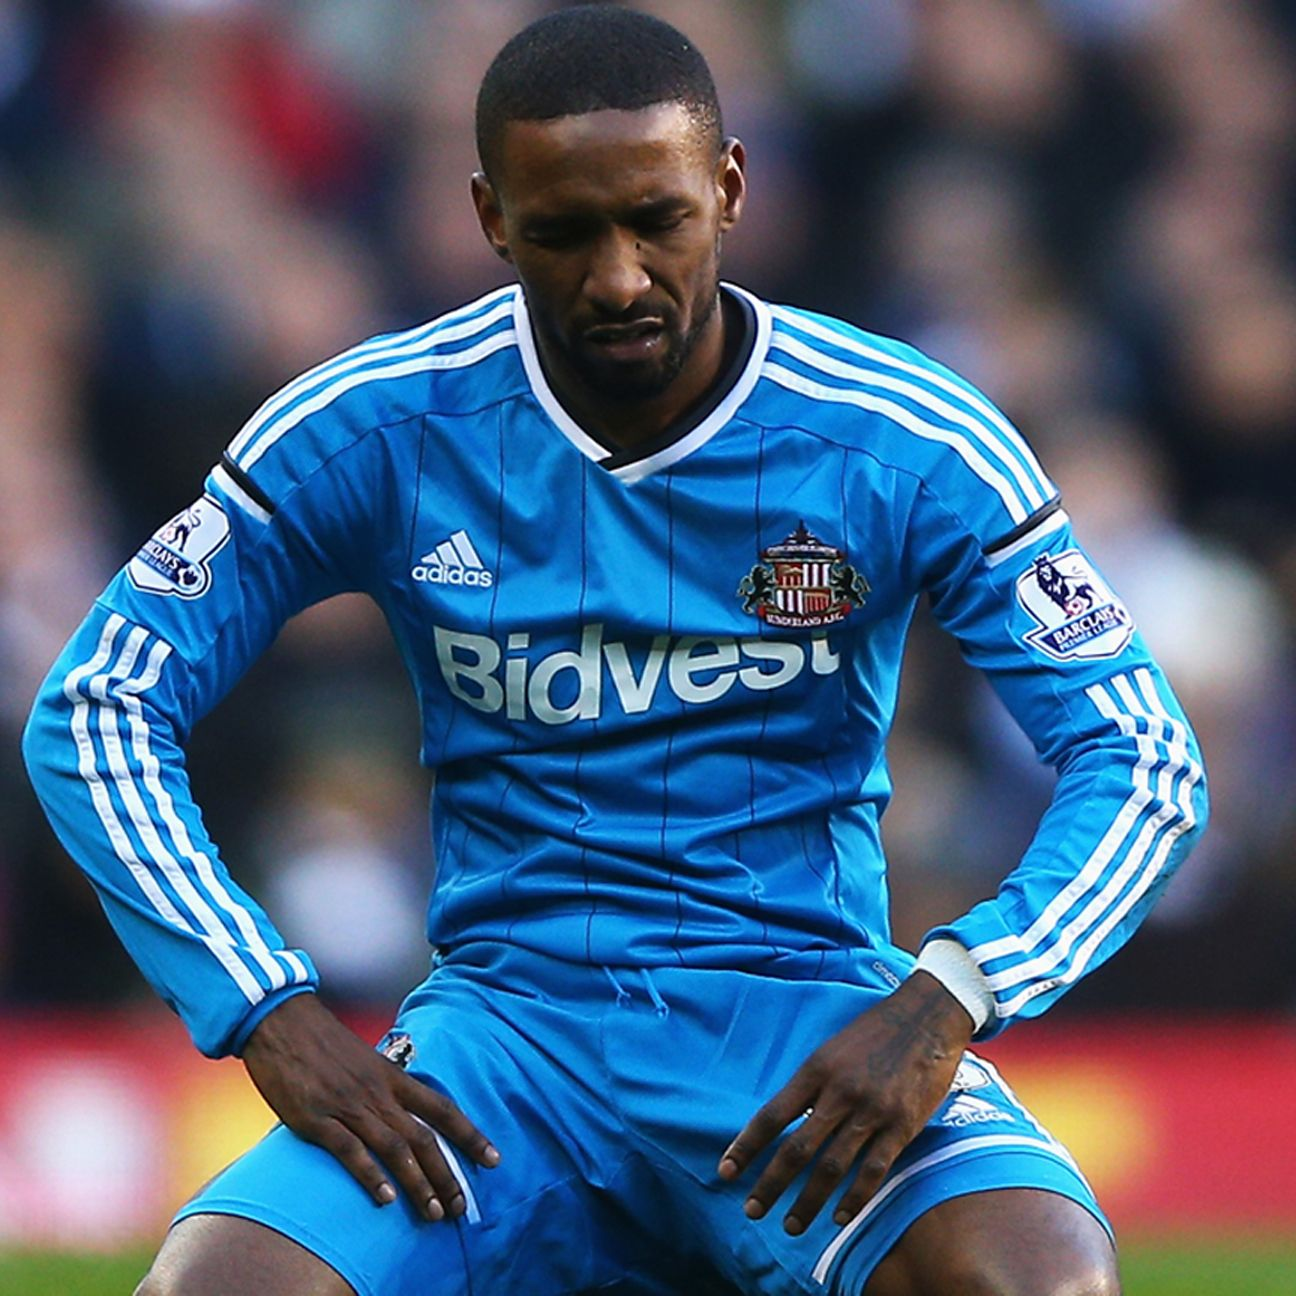 After scoring just 31 goals in 2014-15, Jermaine Defoe and the Sunderland strike force will need to be shored up this summer.